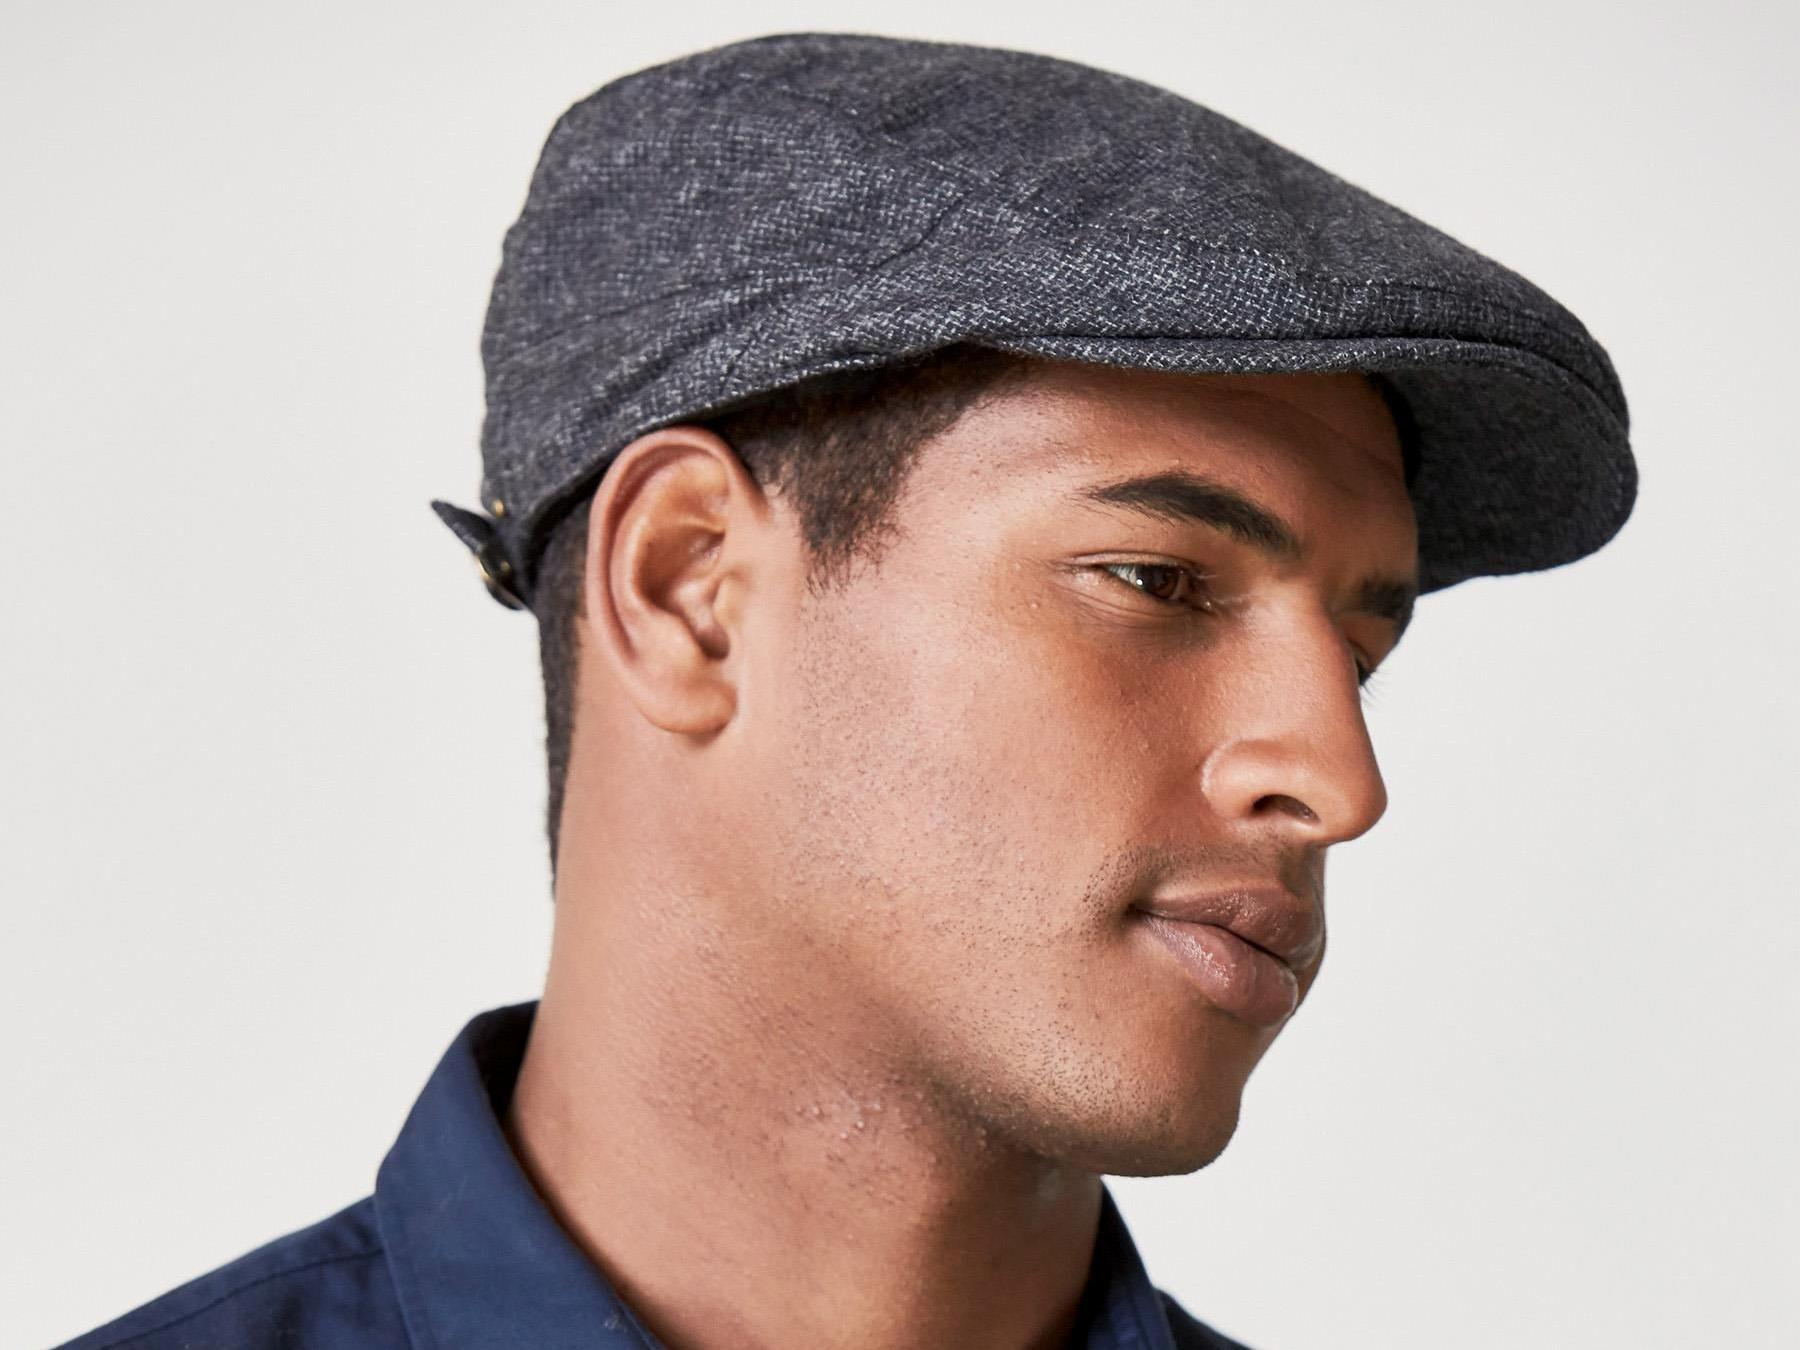 5632eb5f8a7 Who knew Next could pretty much do it all  They re good for their general  clothing range but add flat caps to that list right now because if you want  that ...